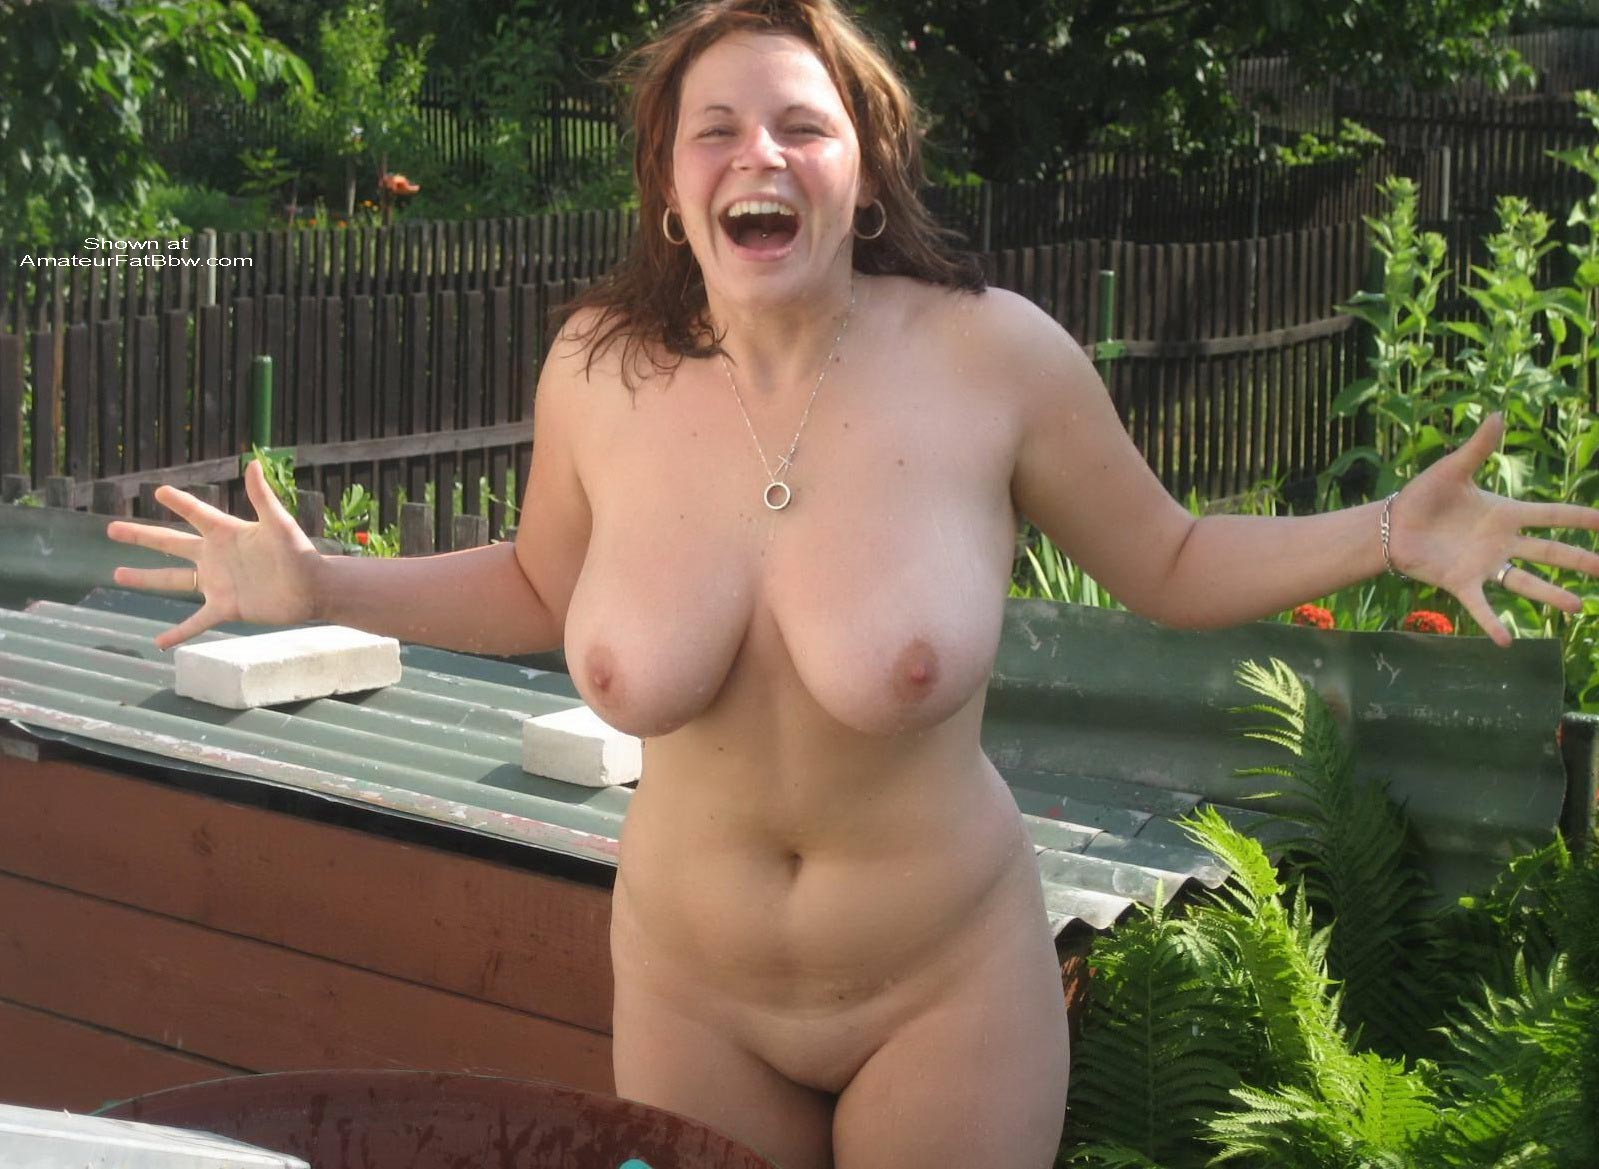 Real amateurs nude congratulate